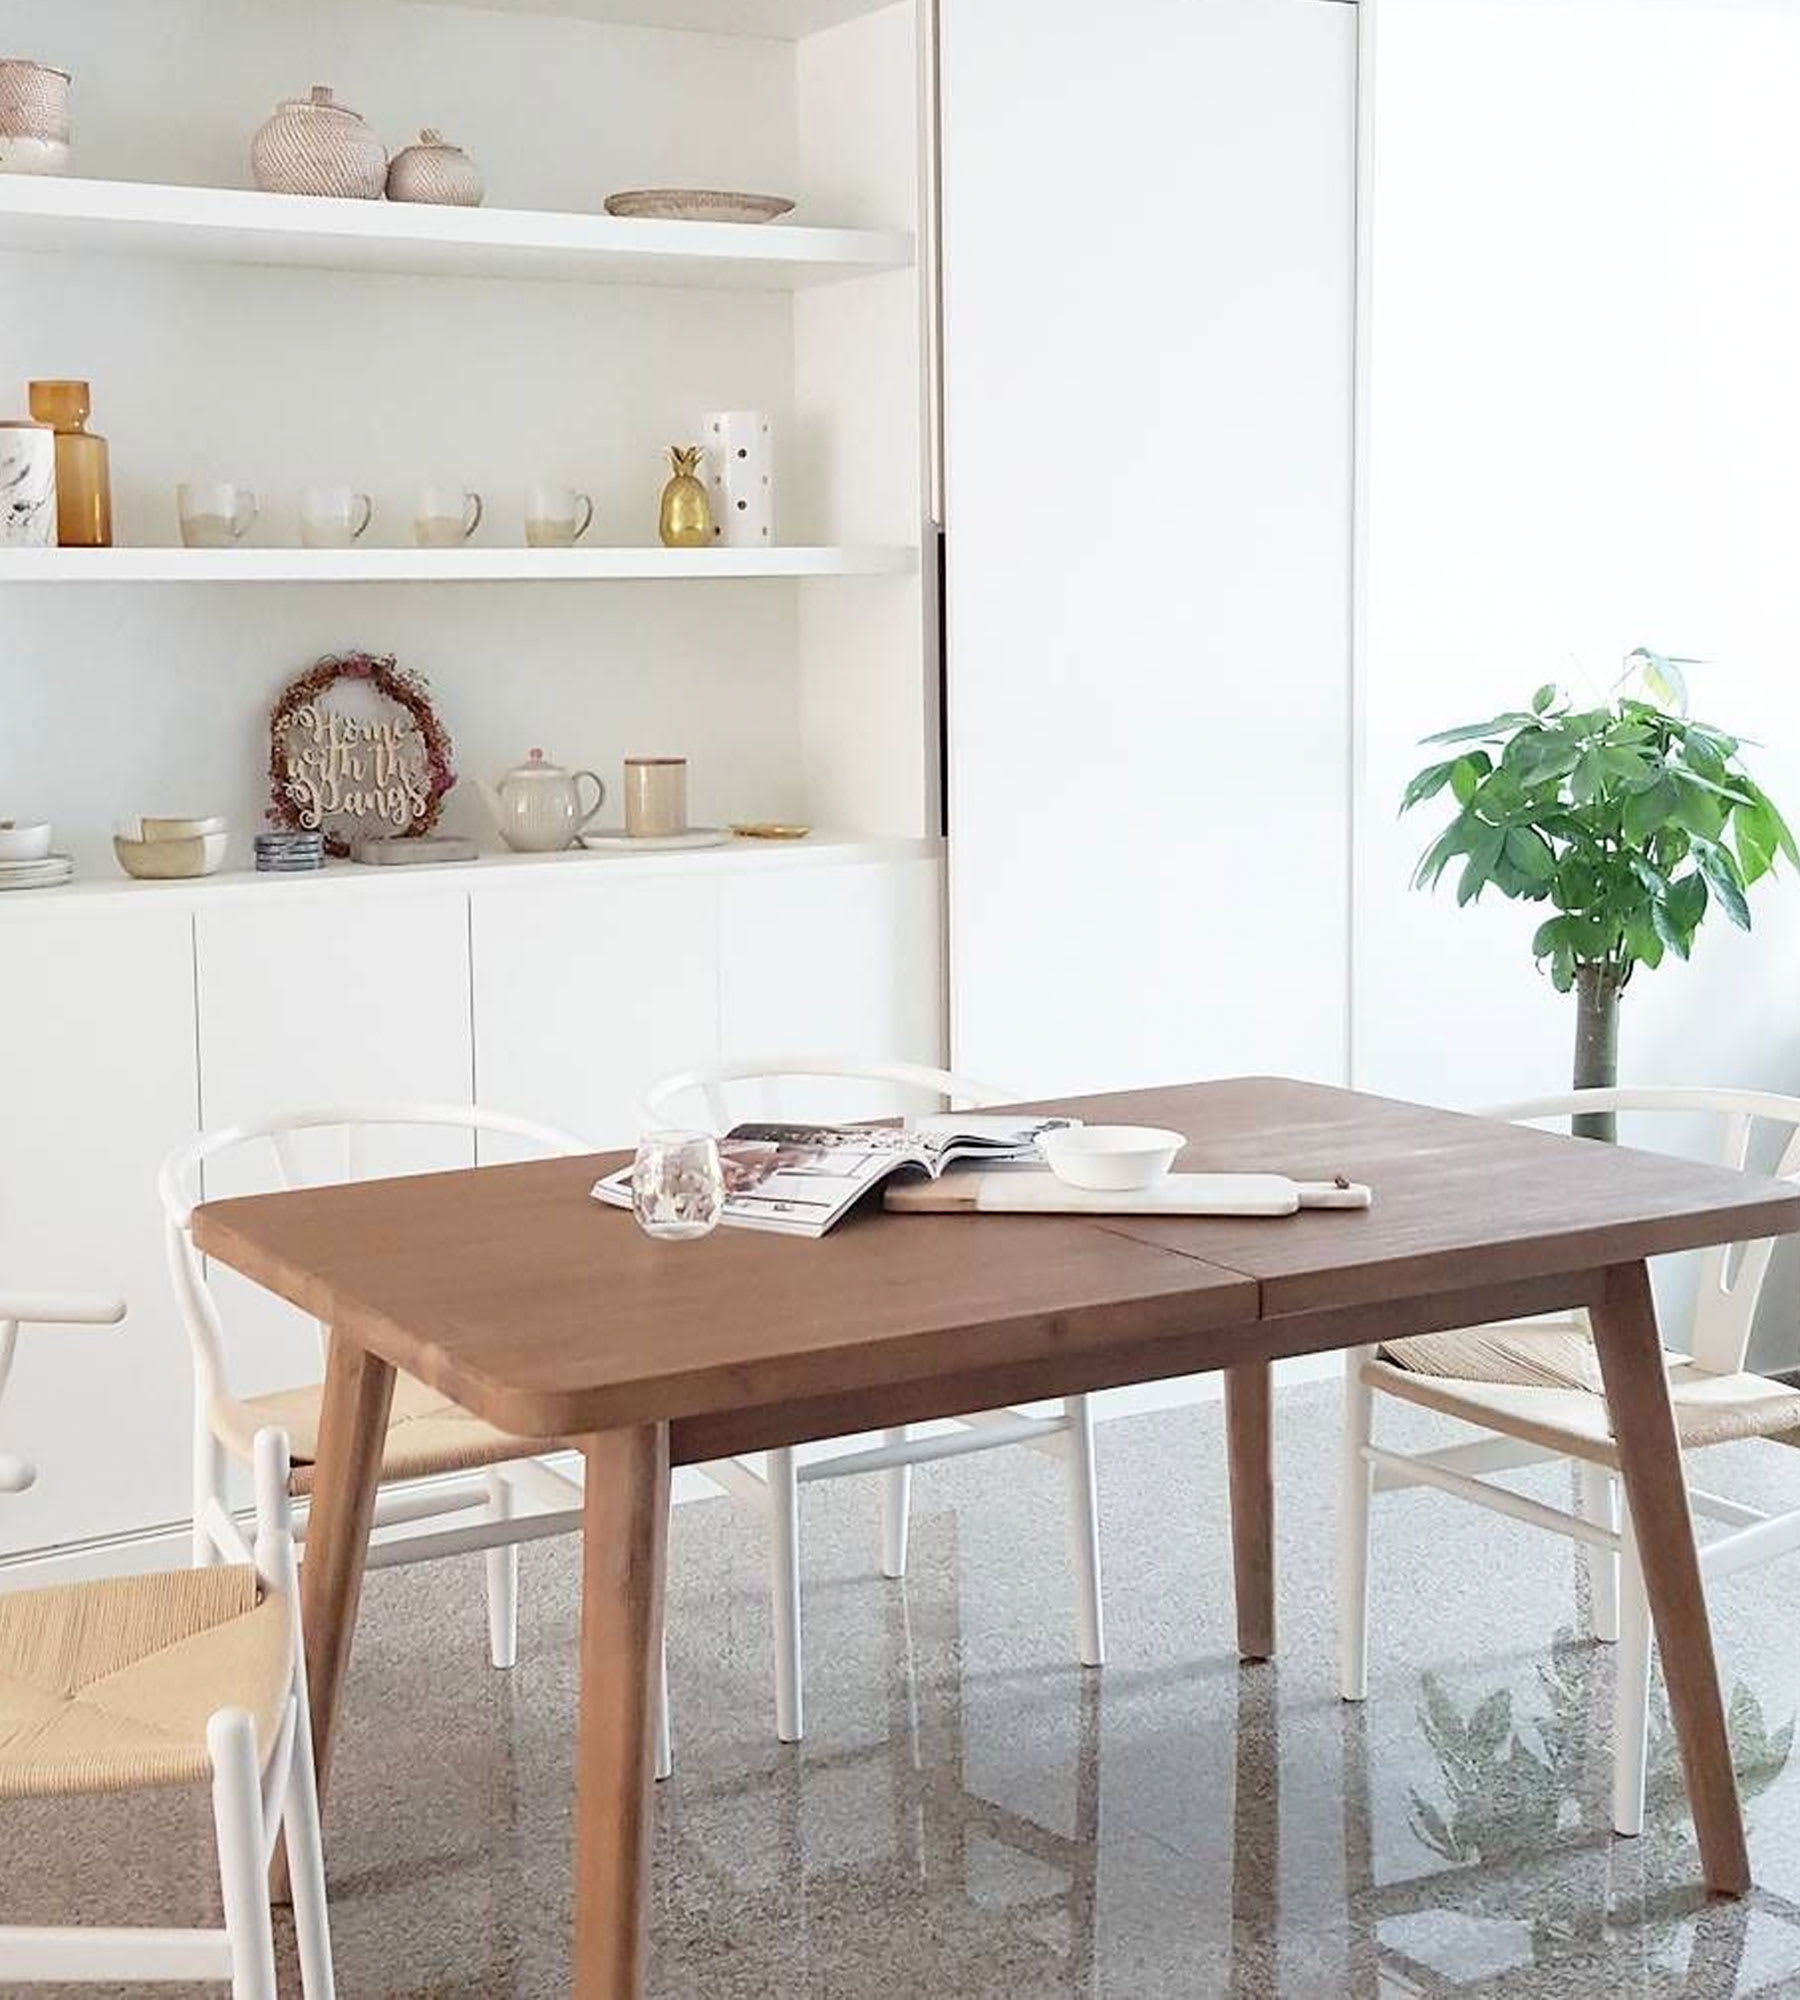 solid wood dining table in modern dining space with chairs and shelf